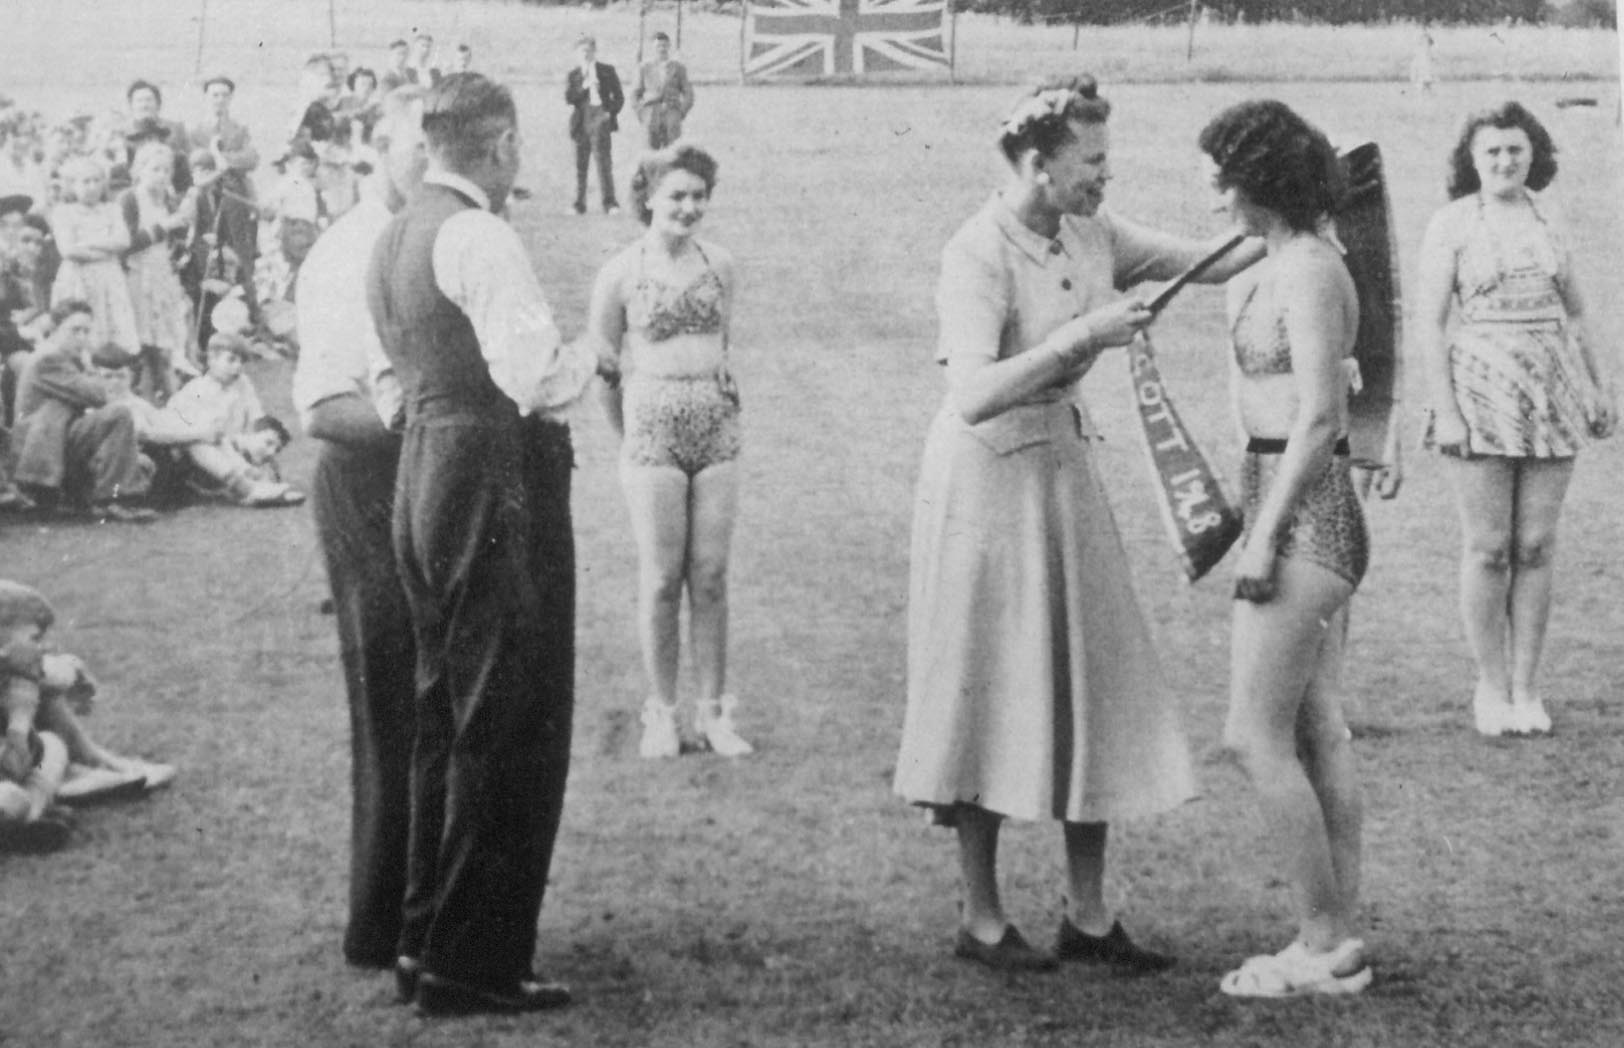 Sash being awarded to 'bathing beauty'